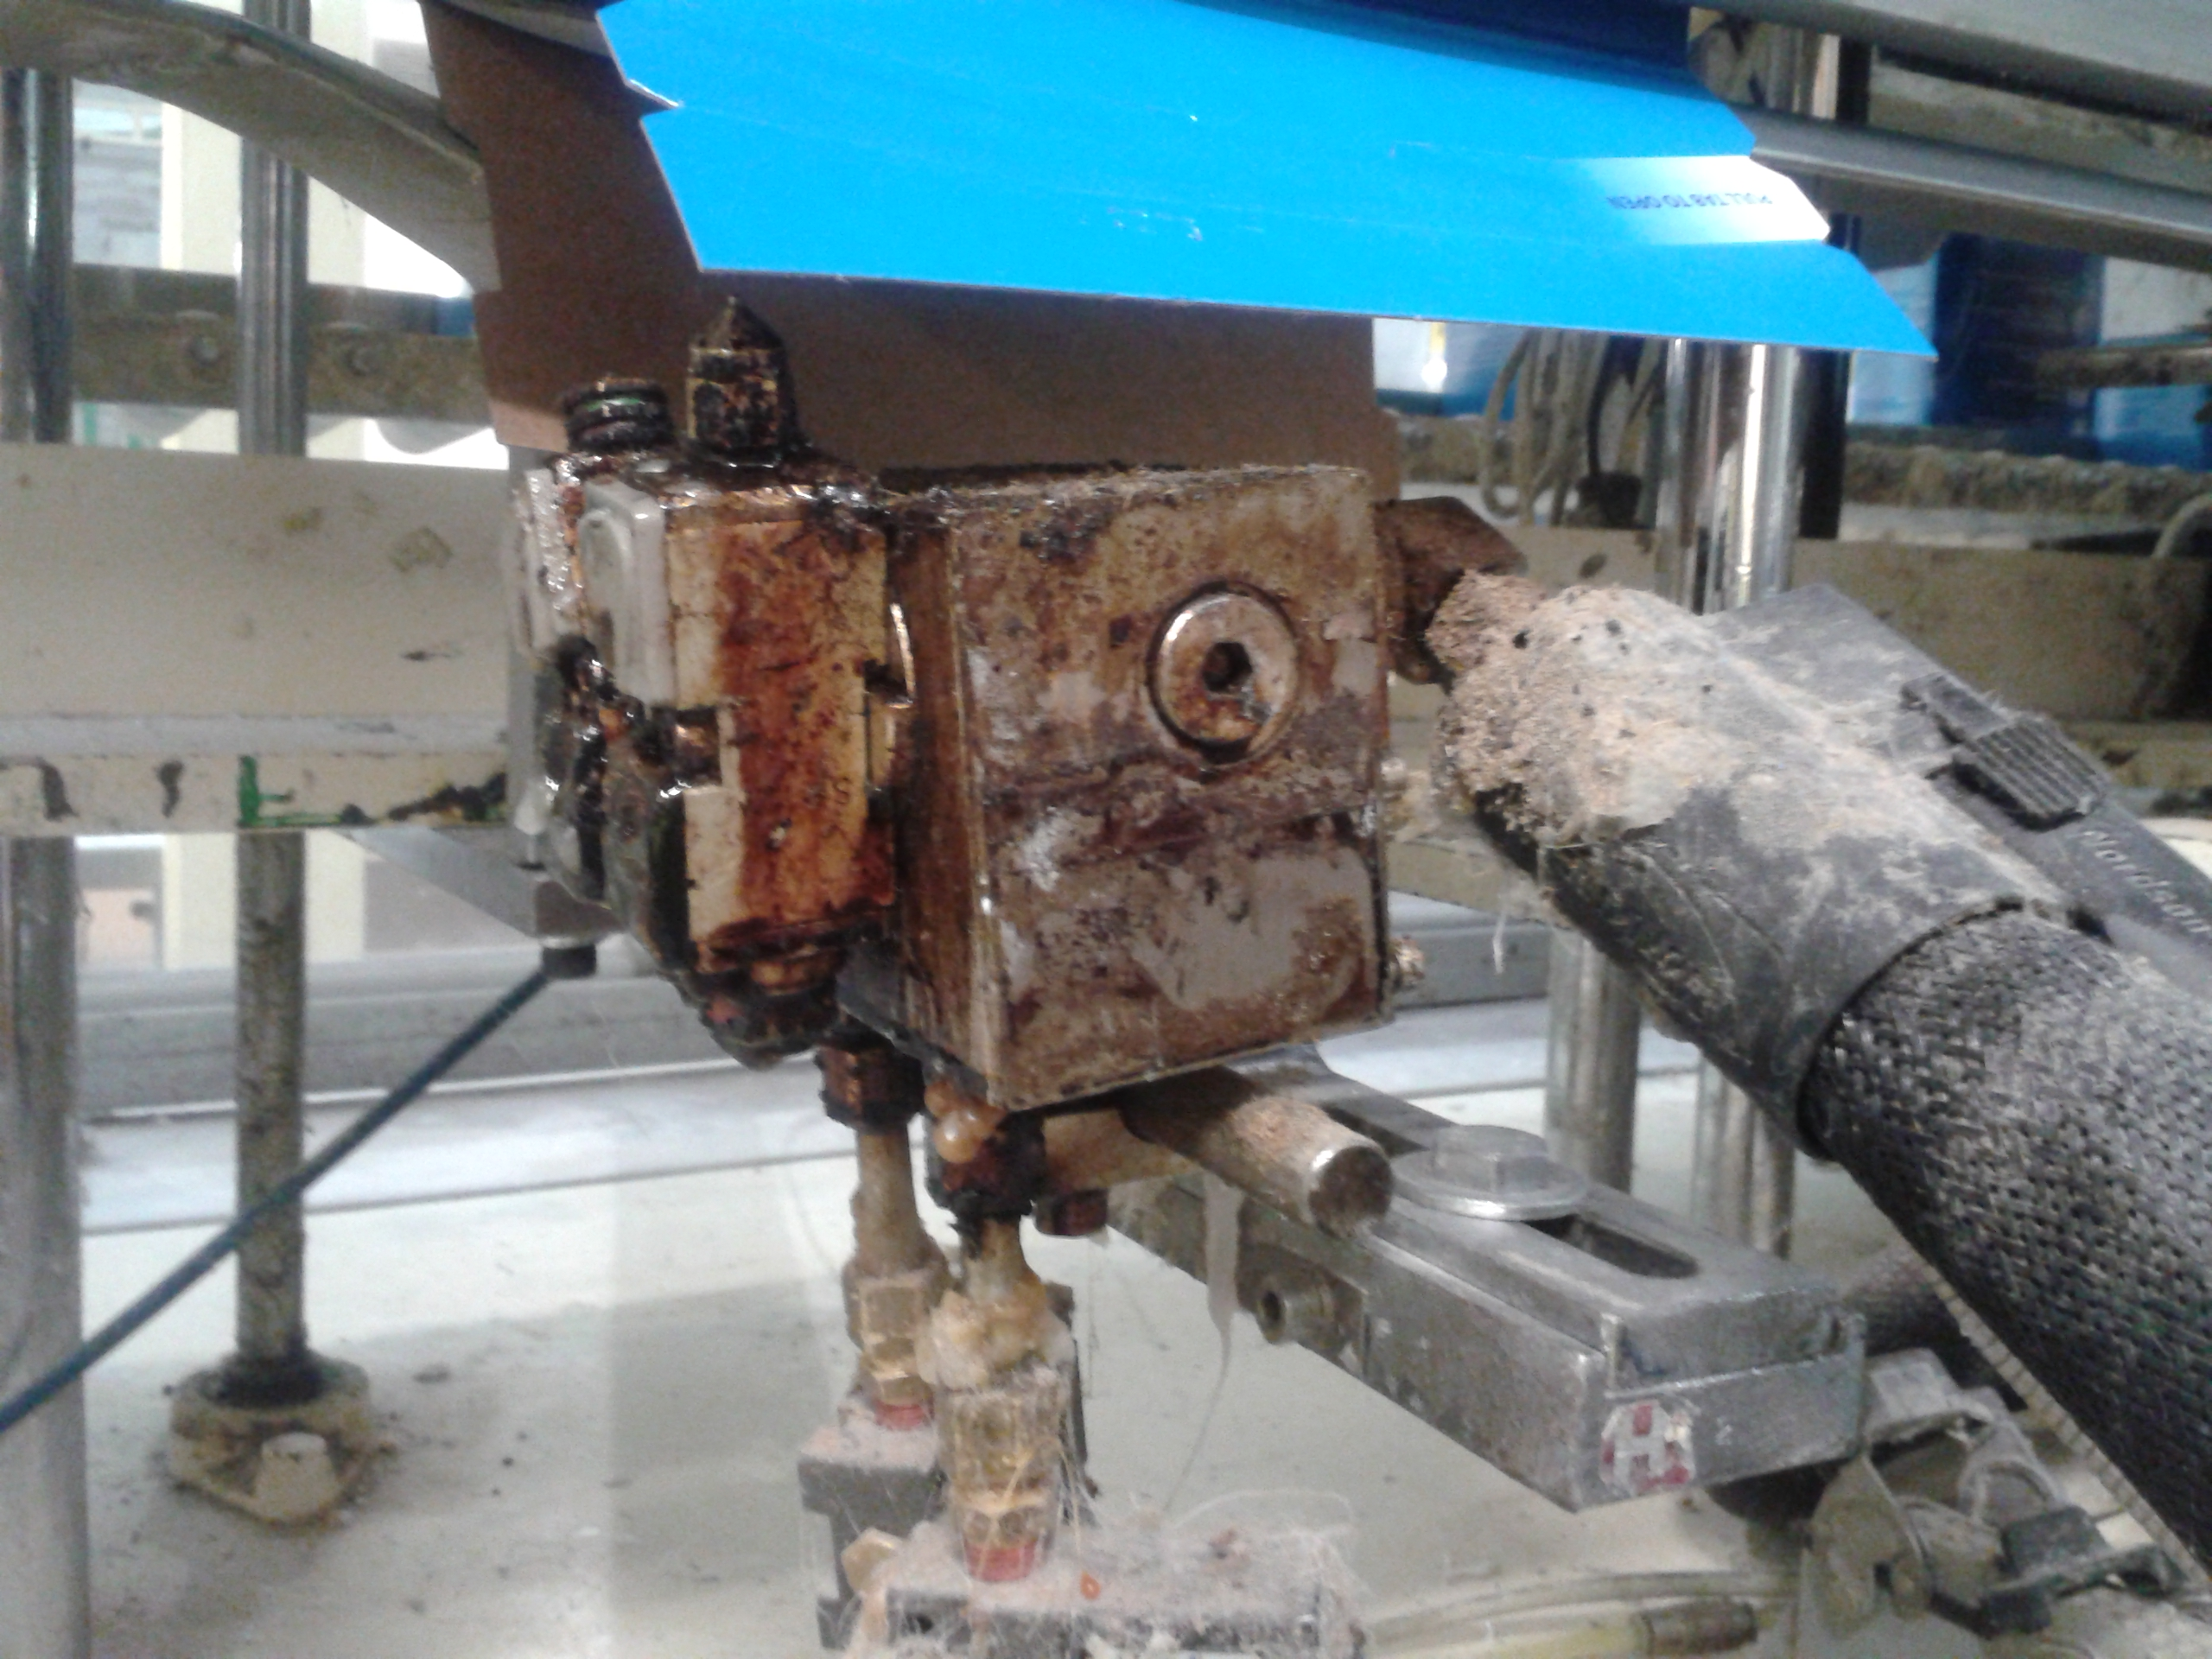 Nordson H200 jetting head for flap seal